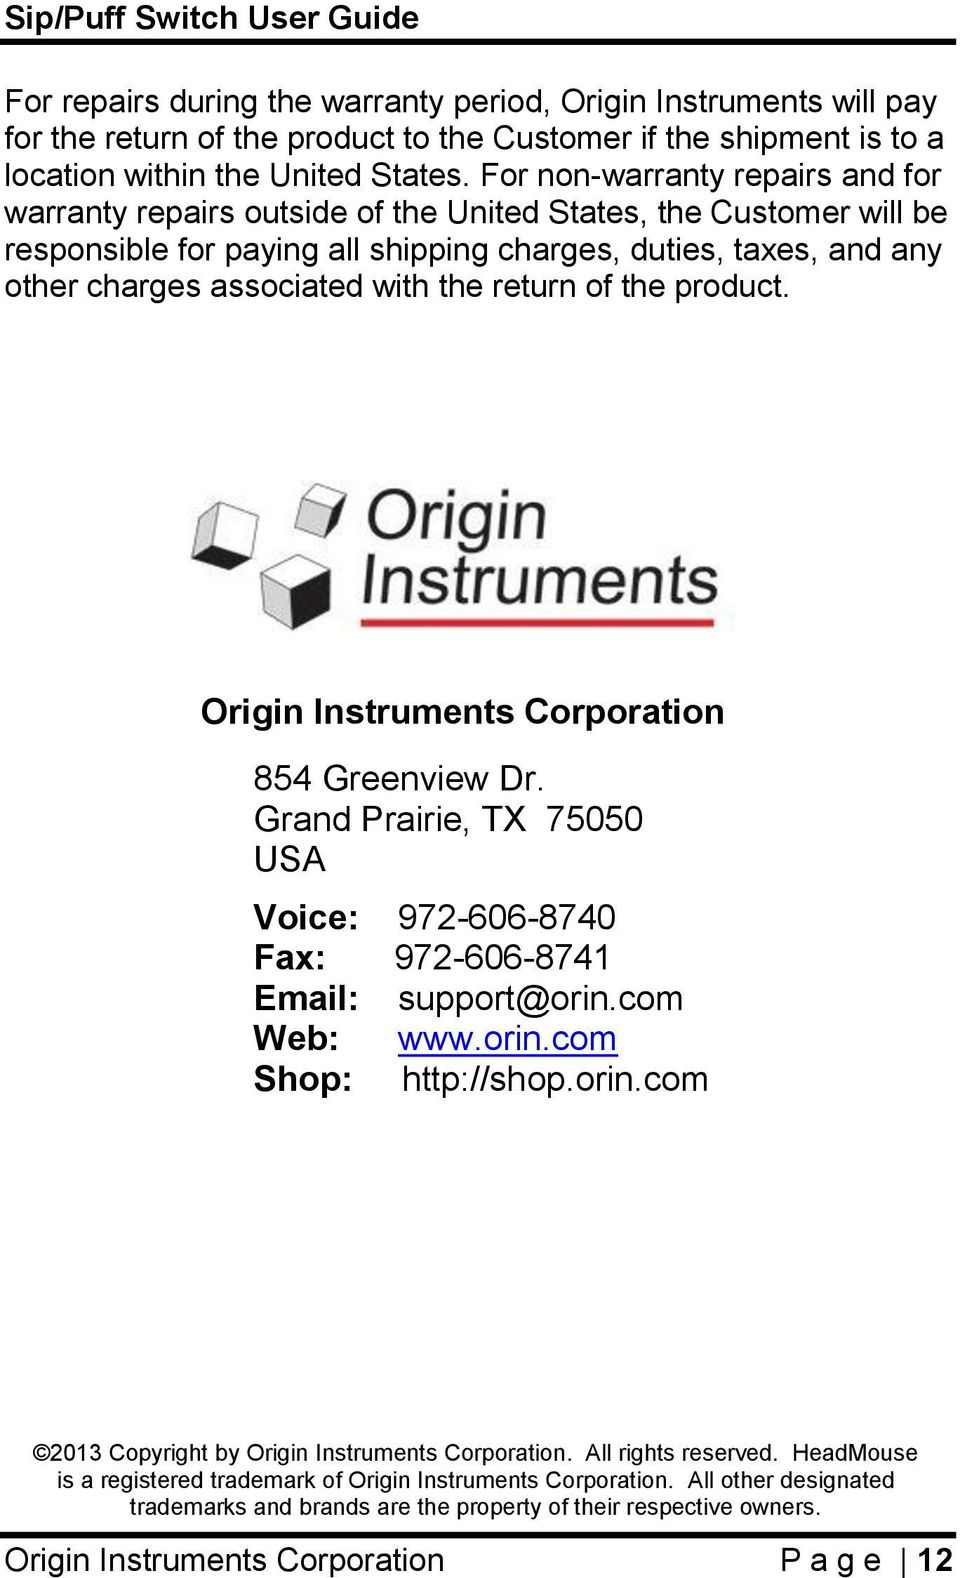 the return of the product. Origin Instruments Corporation 854 Greenview Dr. Grand Prairie, TX 75050 USA Voice: 972-606-8740 Fax: 972-606-8741 Email: support@orin.com Web: www.orin.com Shop: http://shop.